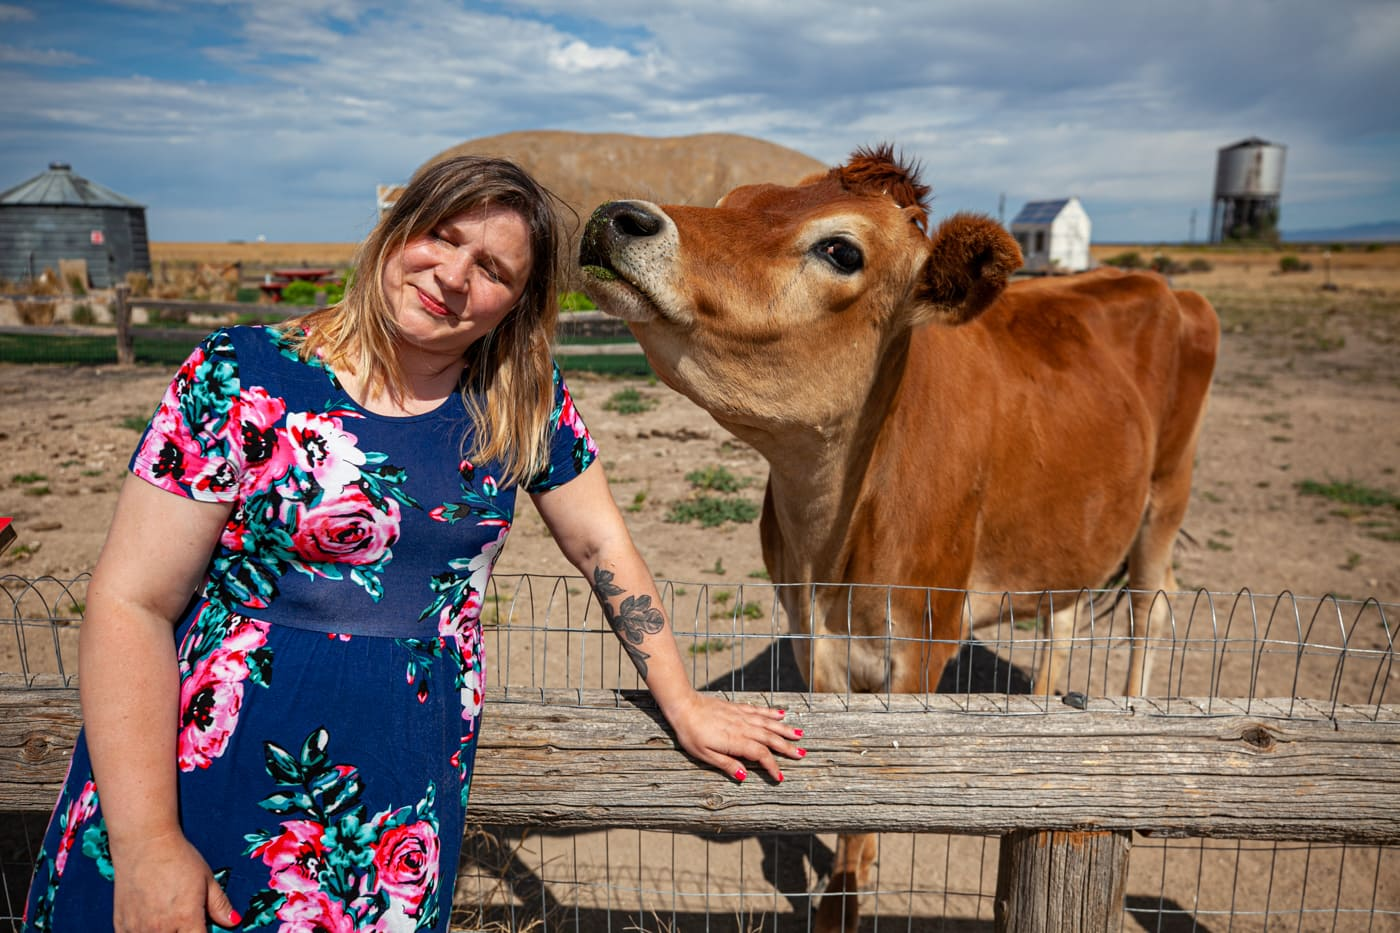 Feeding Dolly the Cow at the Big Idaho Potato Hotel - Potato AirBNB in Boise, Idaho